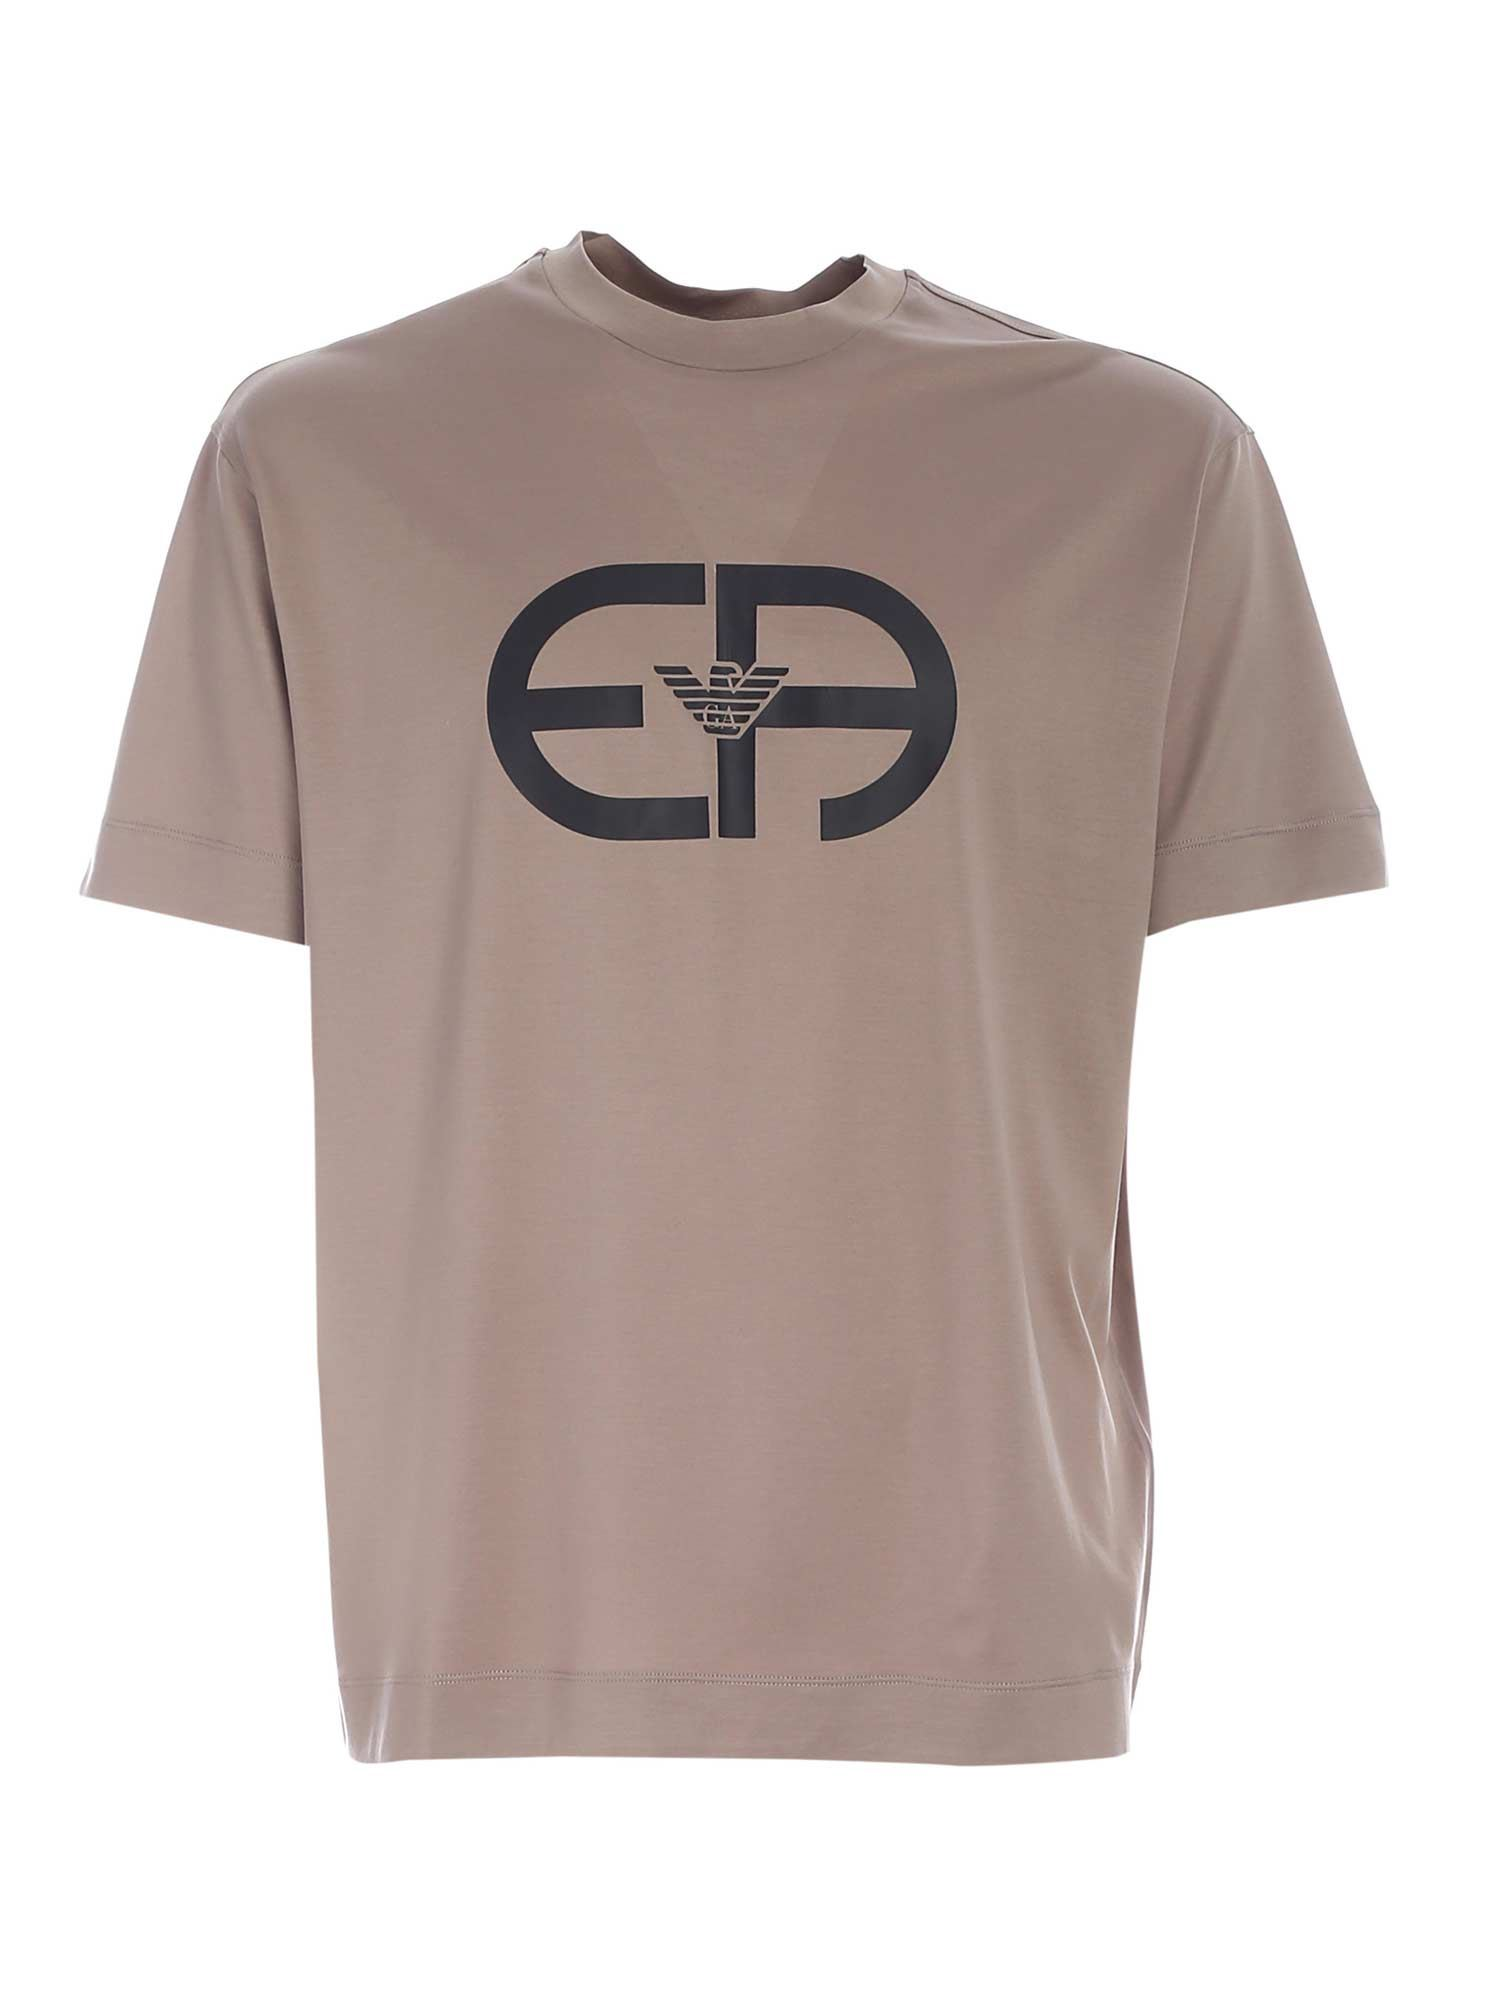 Emporio Armani Cottons LOGO PRINT T-SHIRT IN BROWN